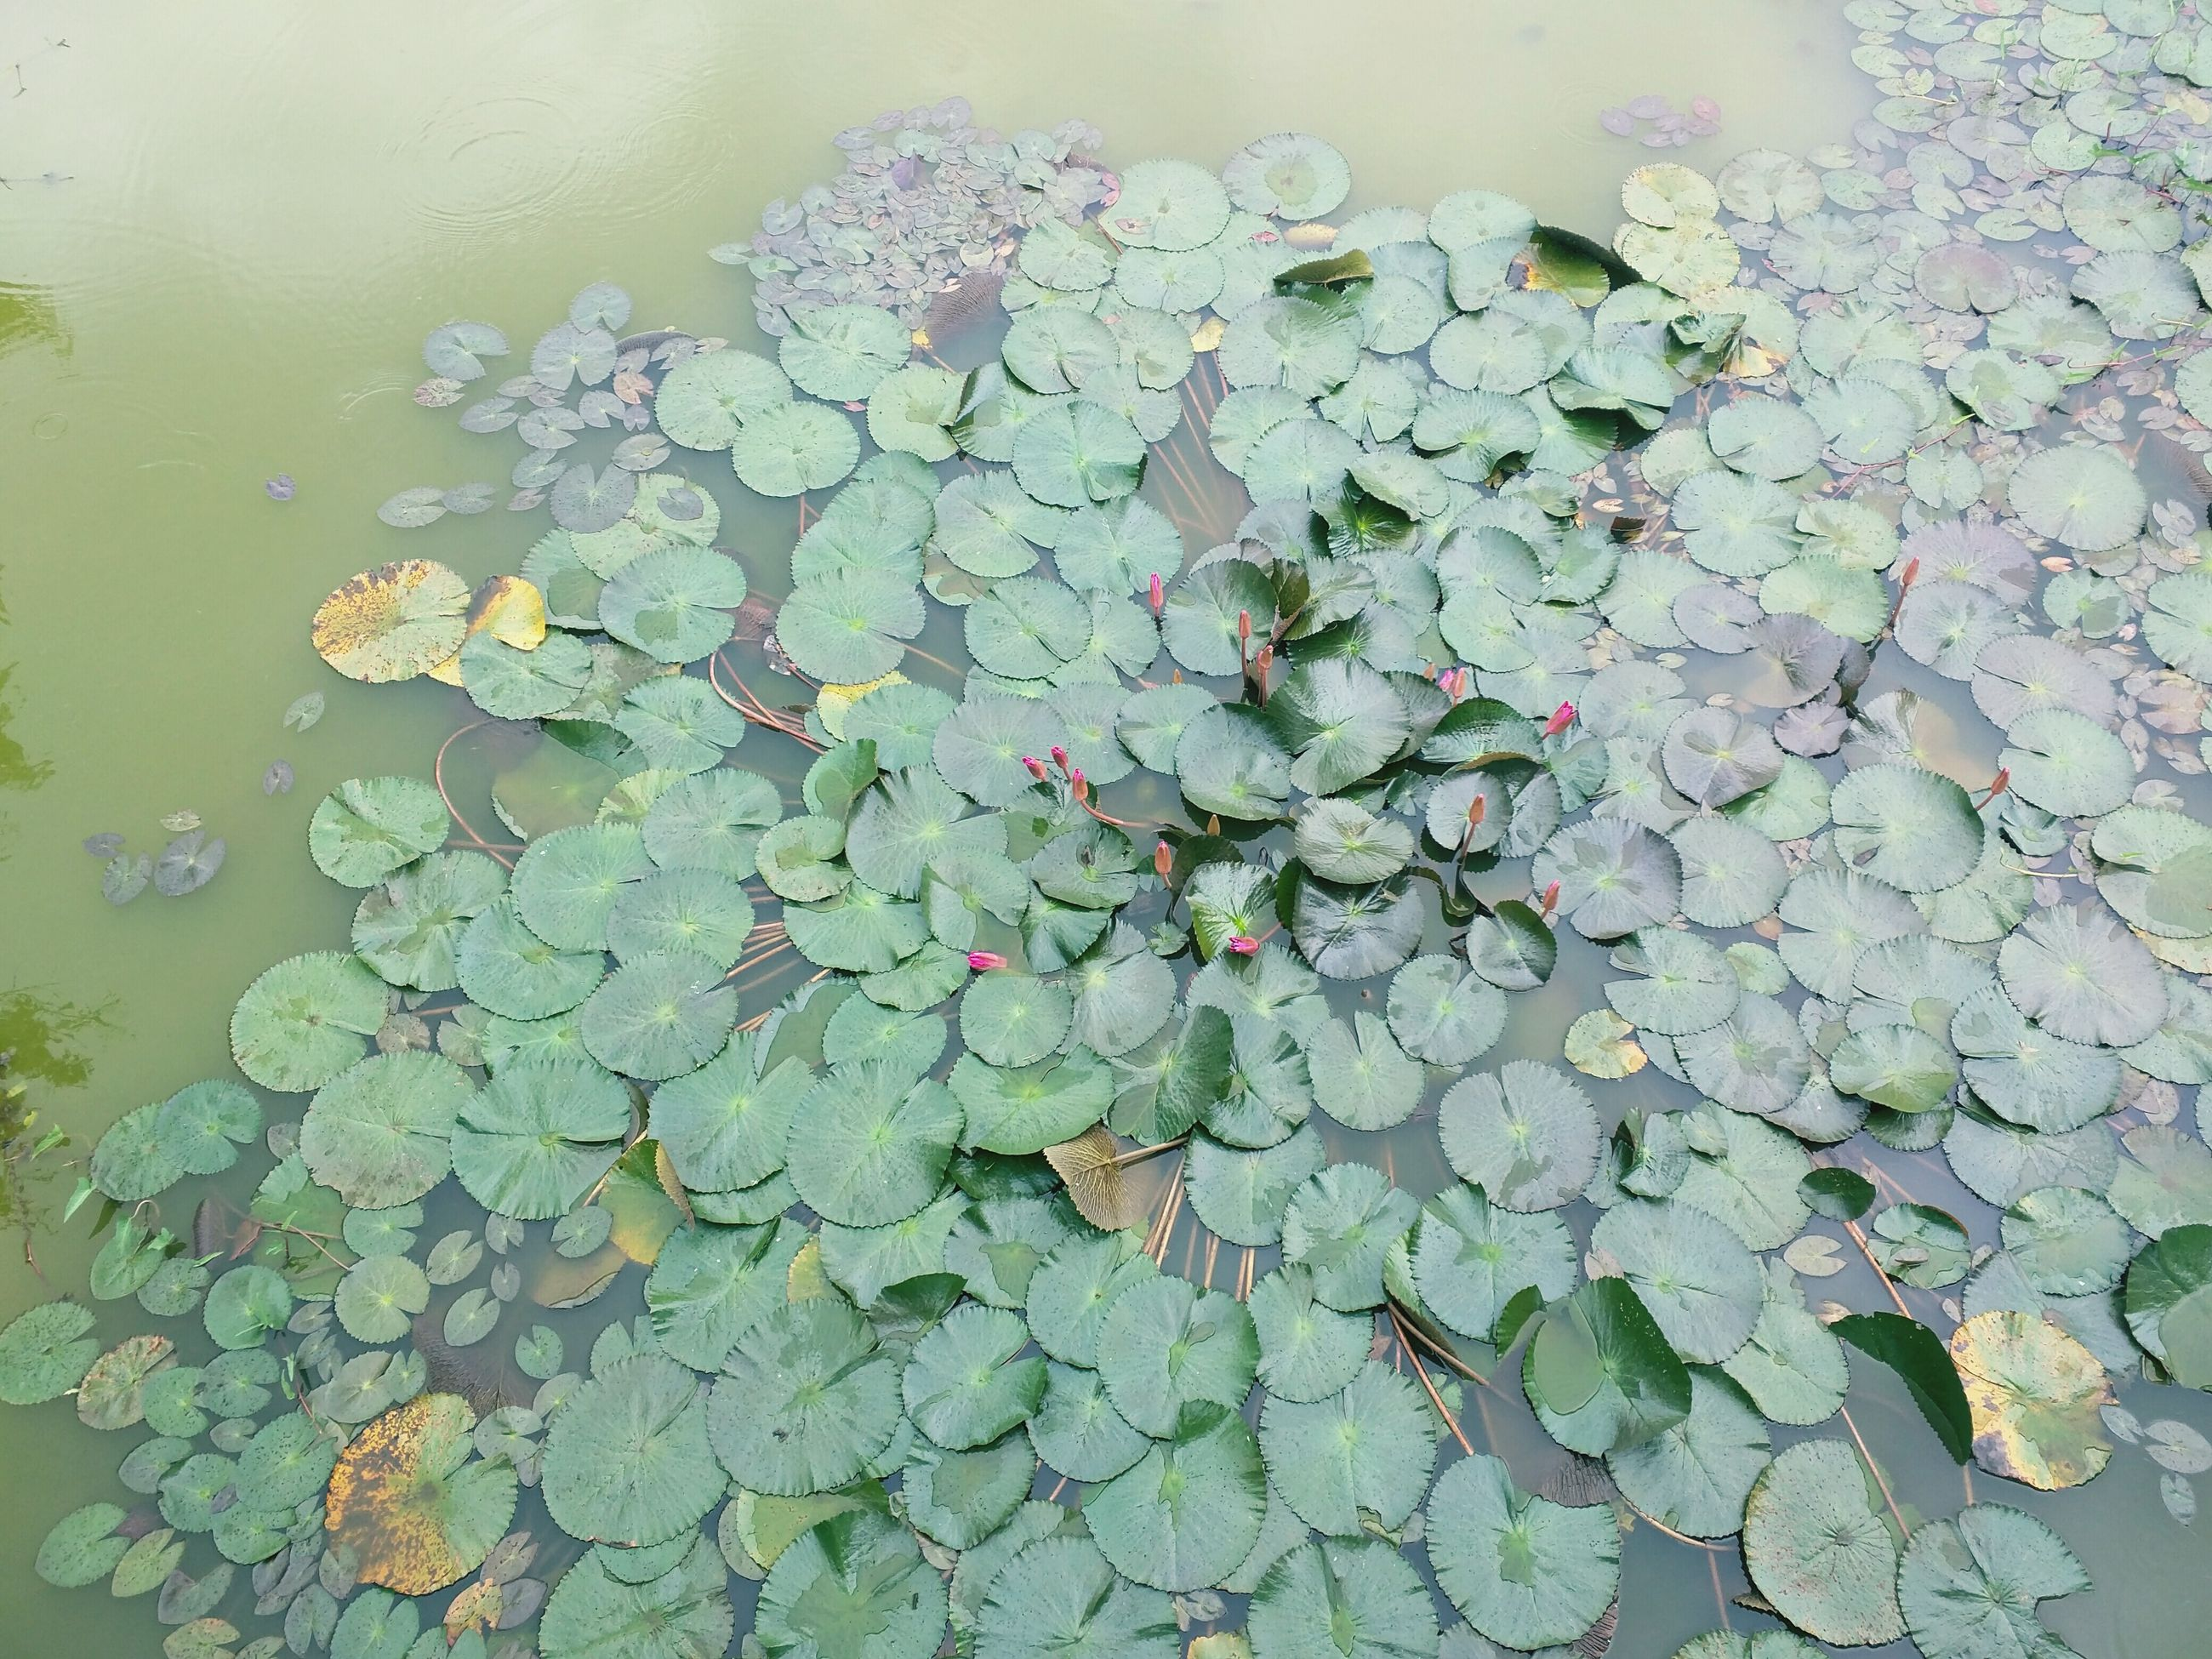 leaf, water, plant, high angle view, growth, green color, nature, leaves, season, fragility, wet, floating on water, beauty in nature, autumn, wall - building feature, pond, day, close-up, flower, no people